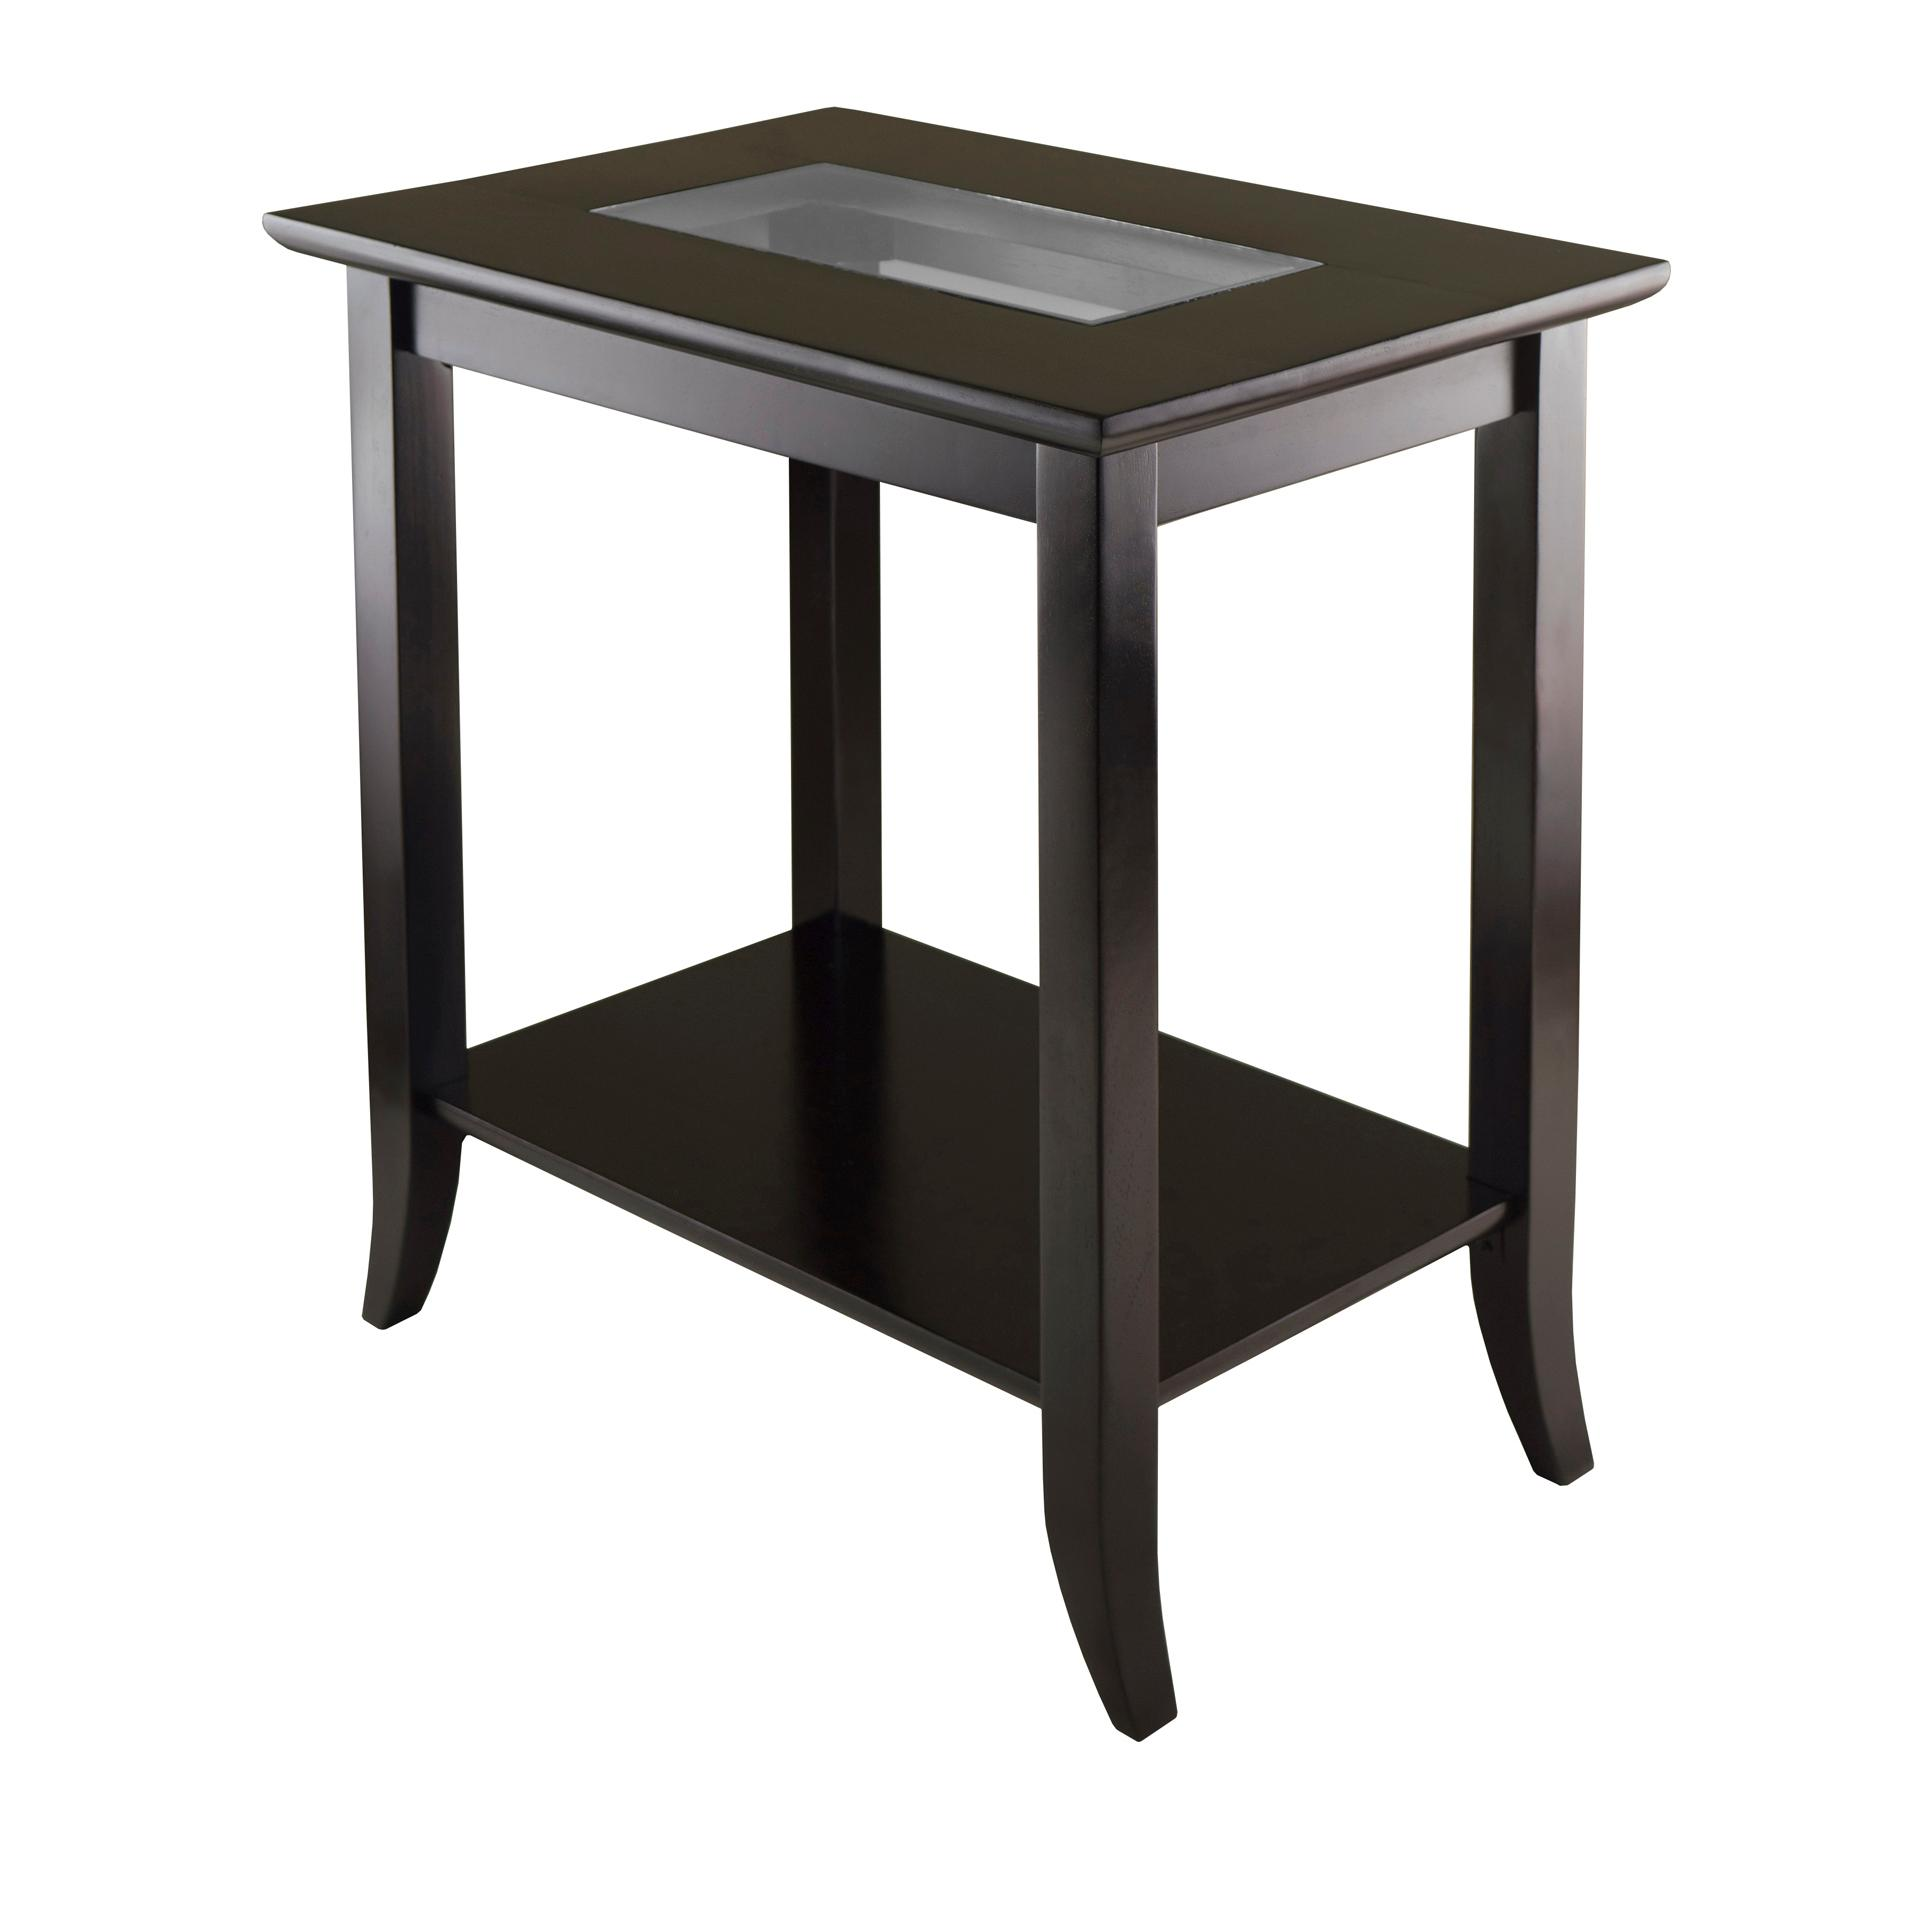 Winsome genoa rectangular end table with glass for Glass end tables